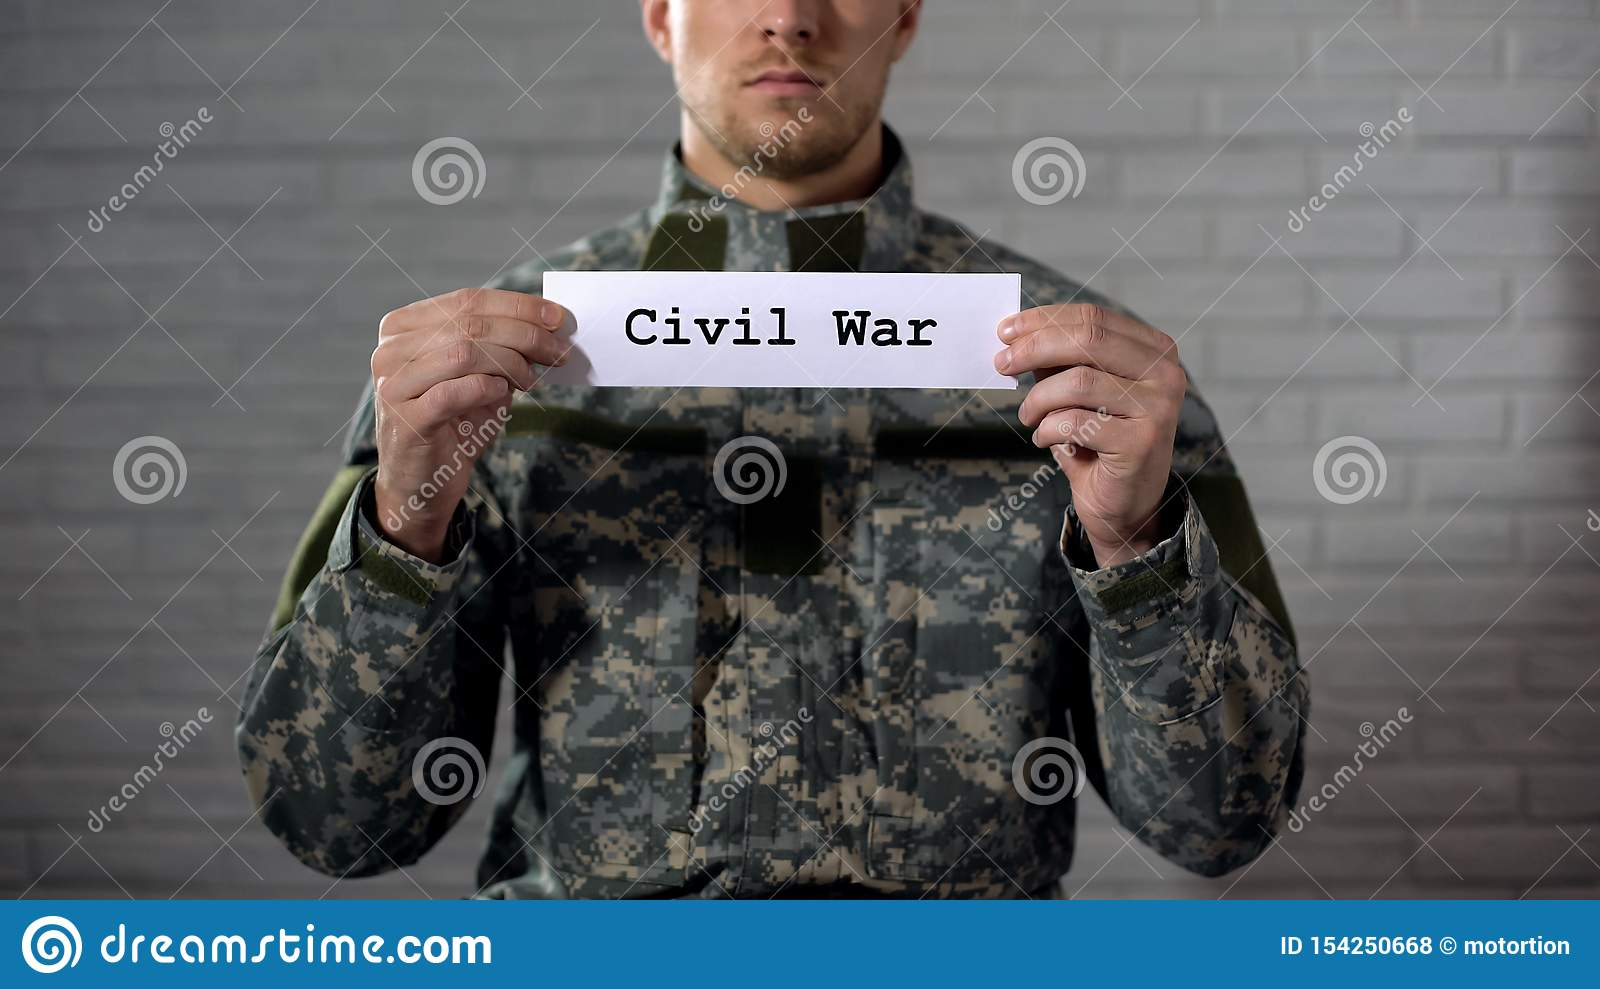 Civil war word written on sign in hands of male soldier, cruelty and death